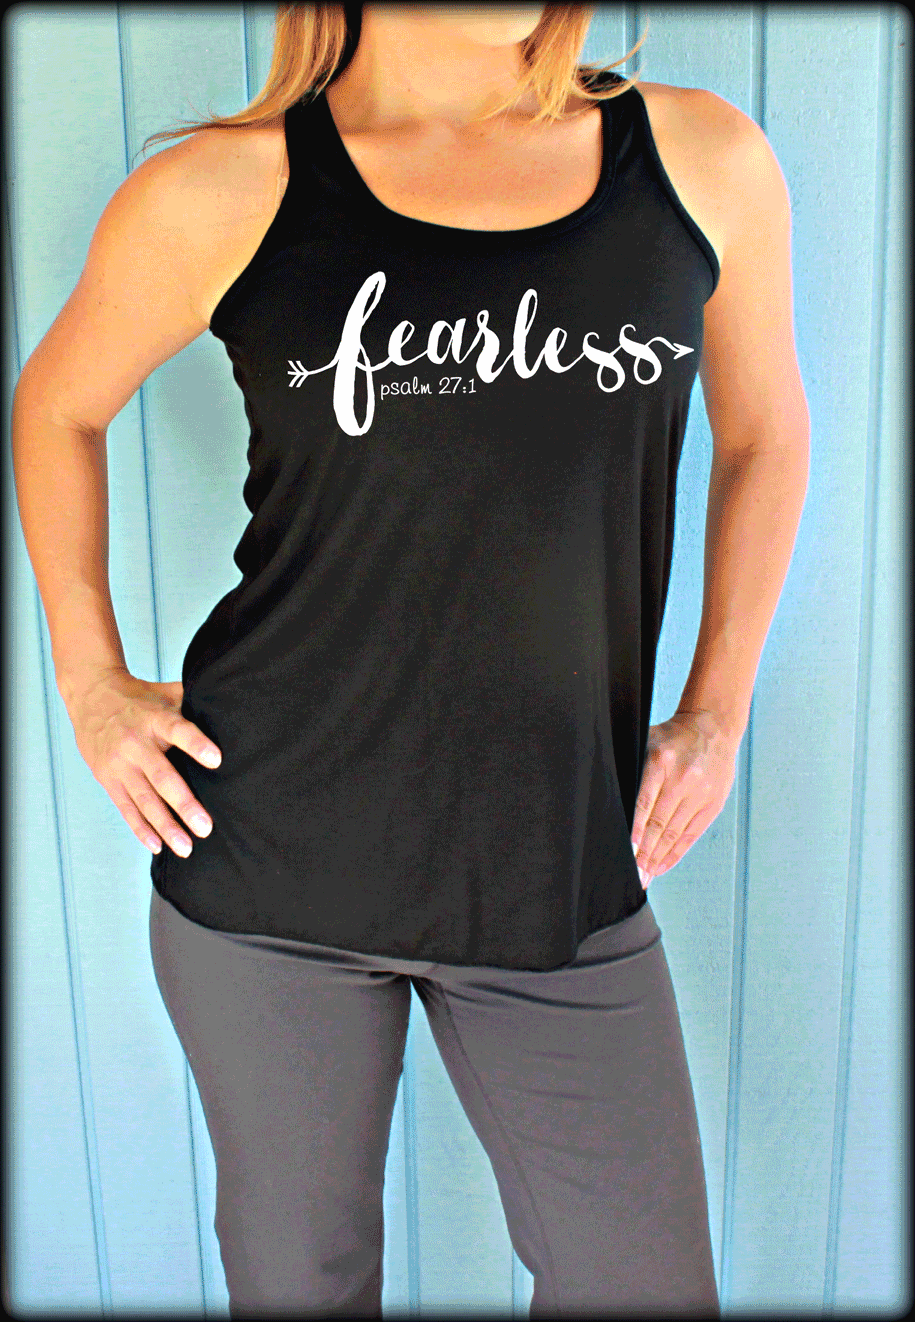 Fearless Psalm 27:1 Christian Womens Flowy Bible Verse Workout Tank Top